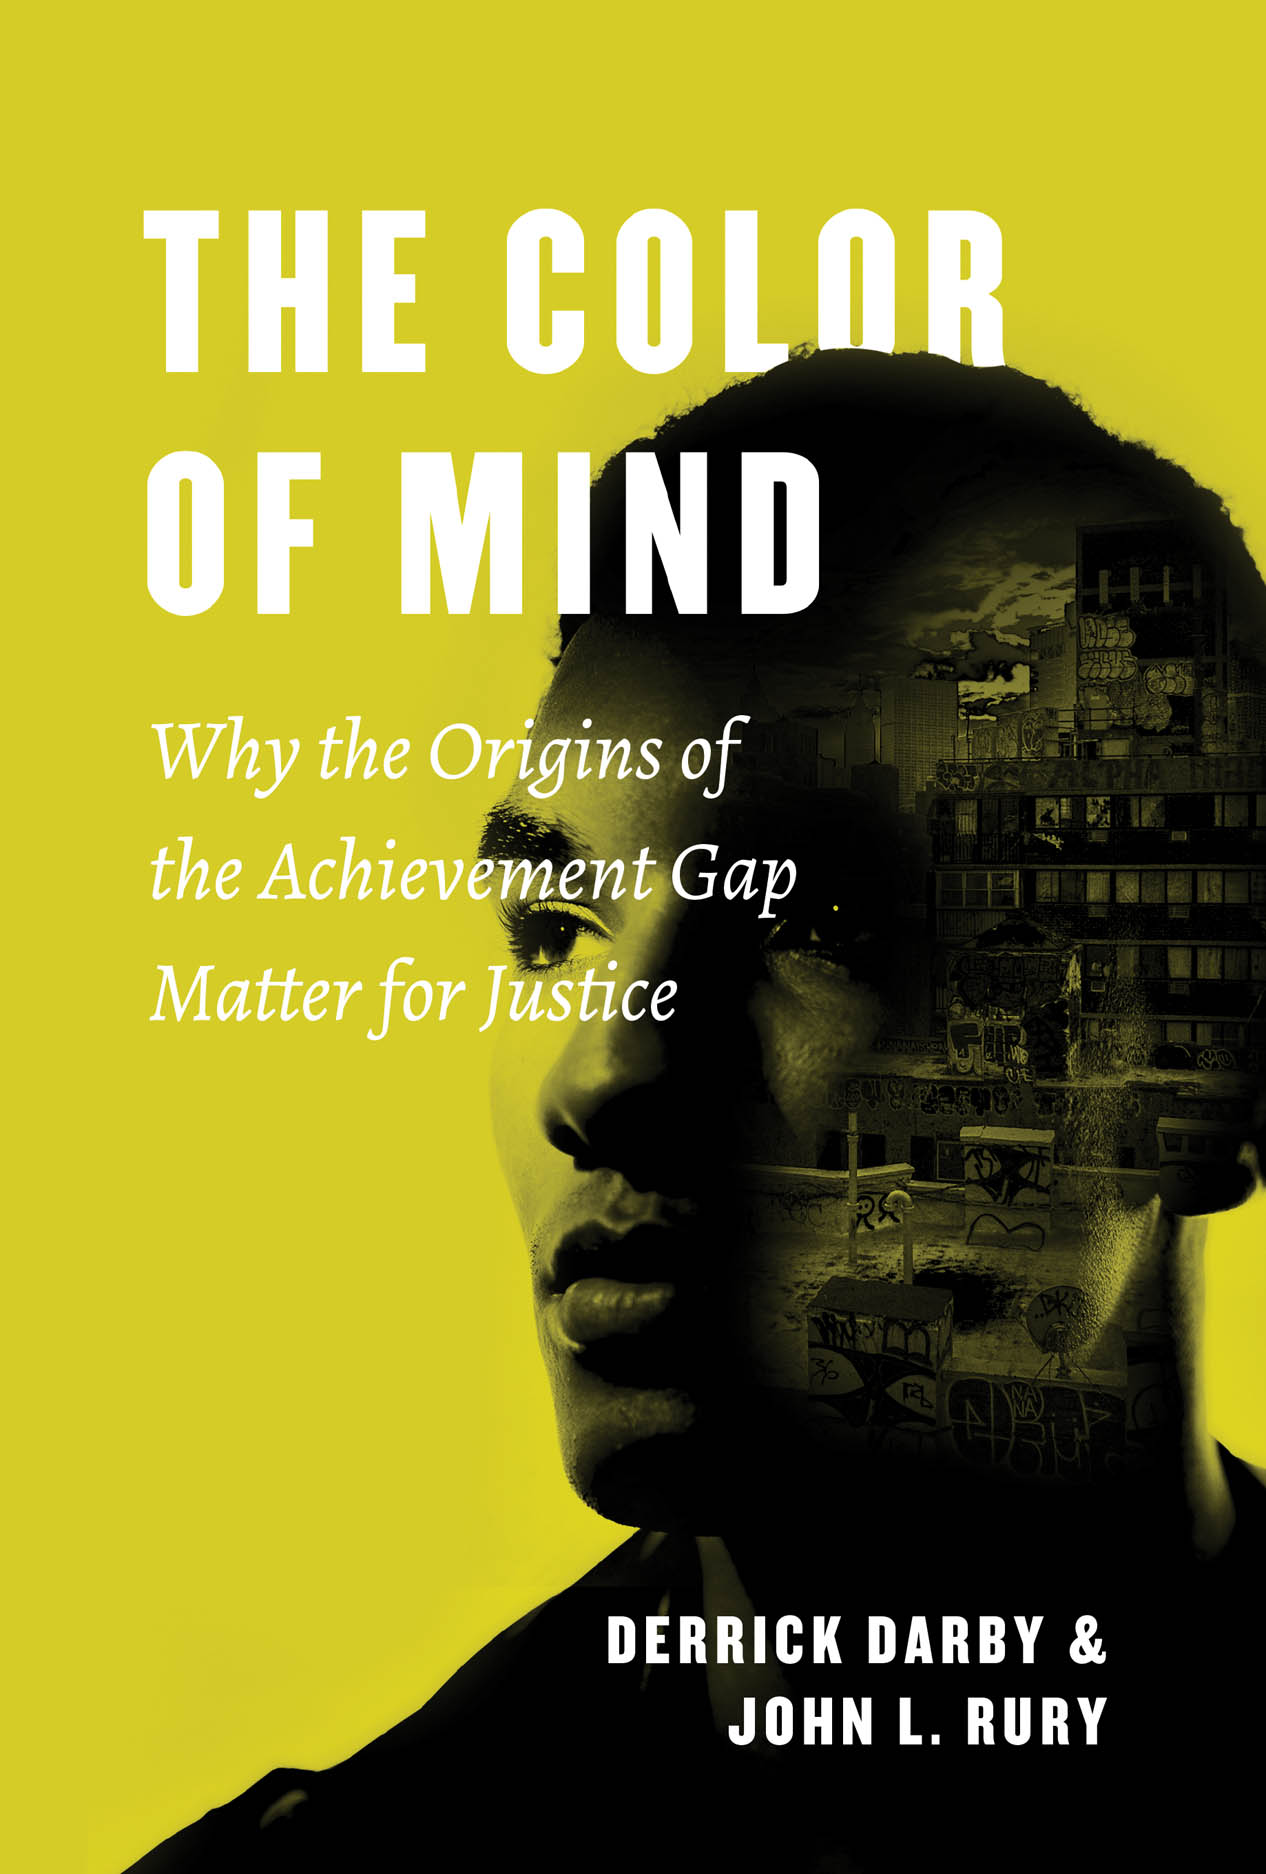 The Color of Mind: Why the Origins of the Achievement Gap Matter for Justice